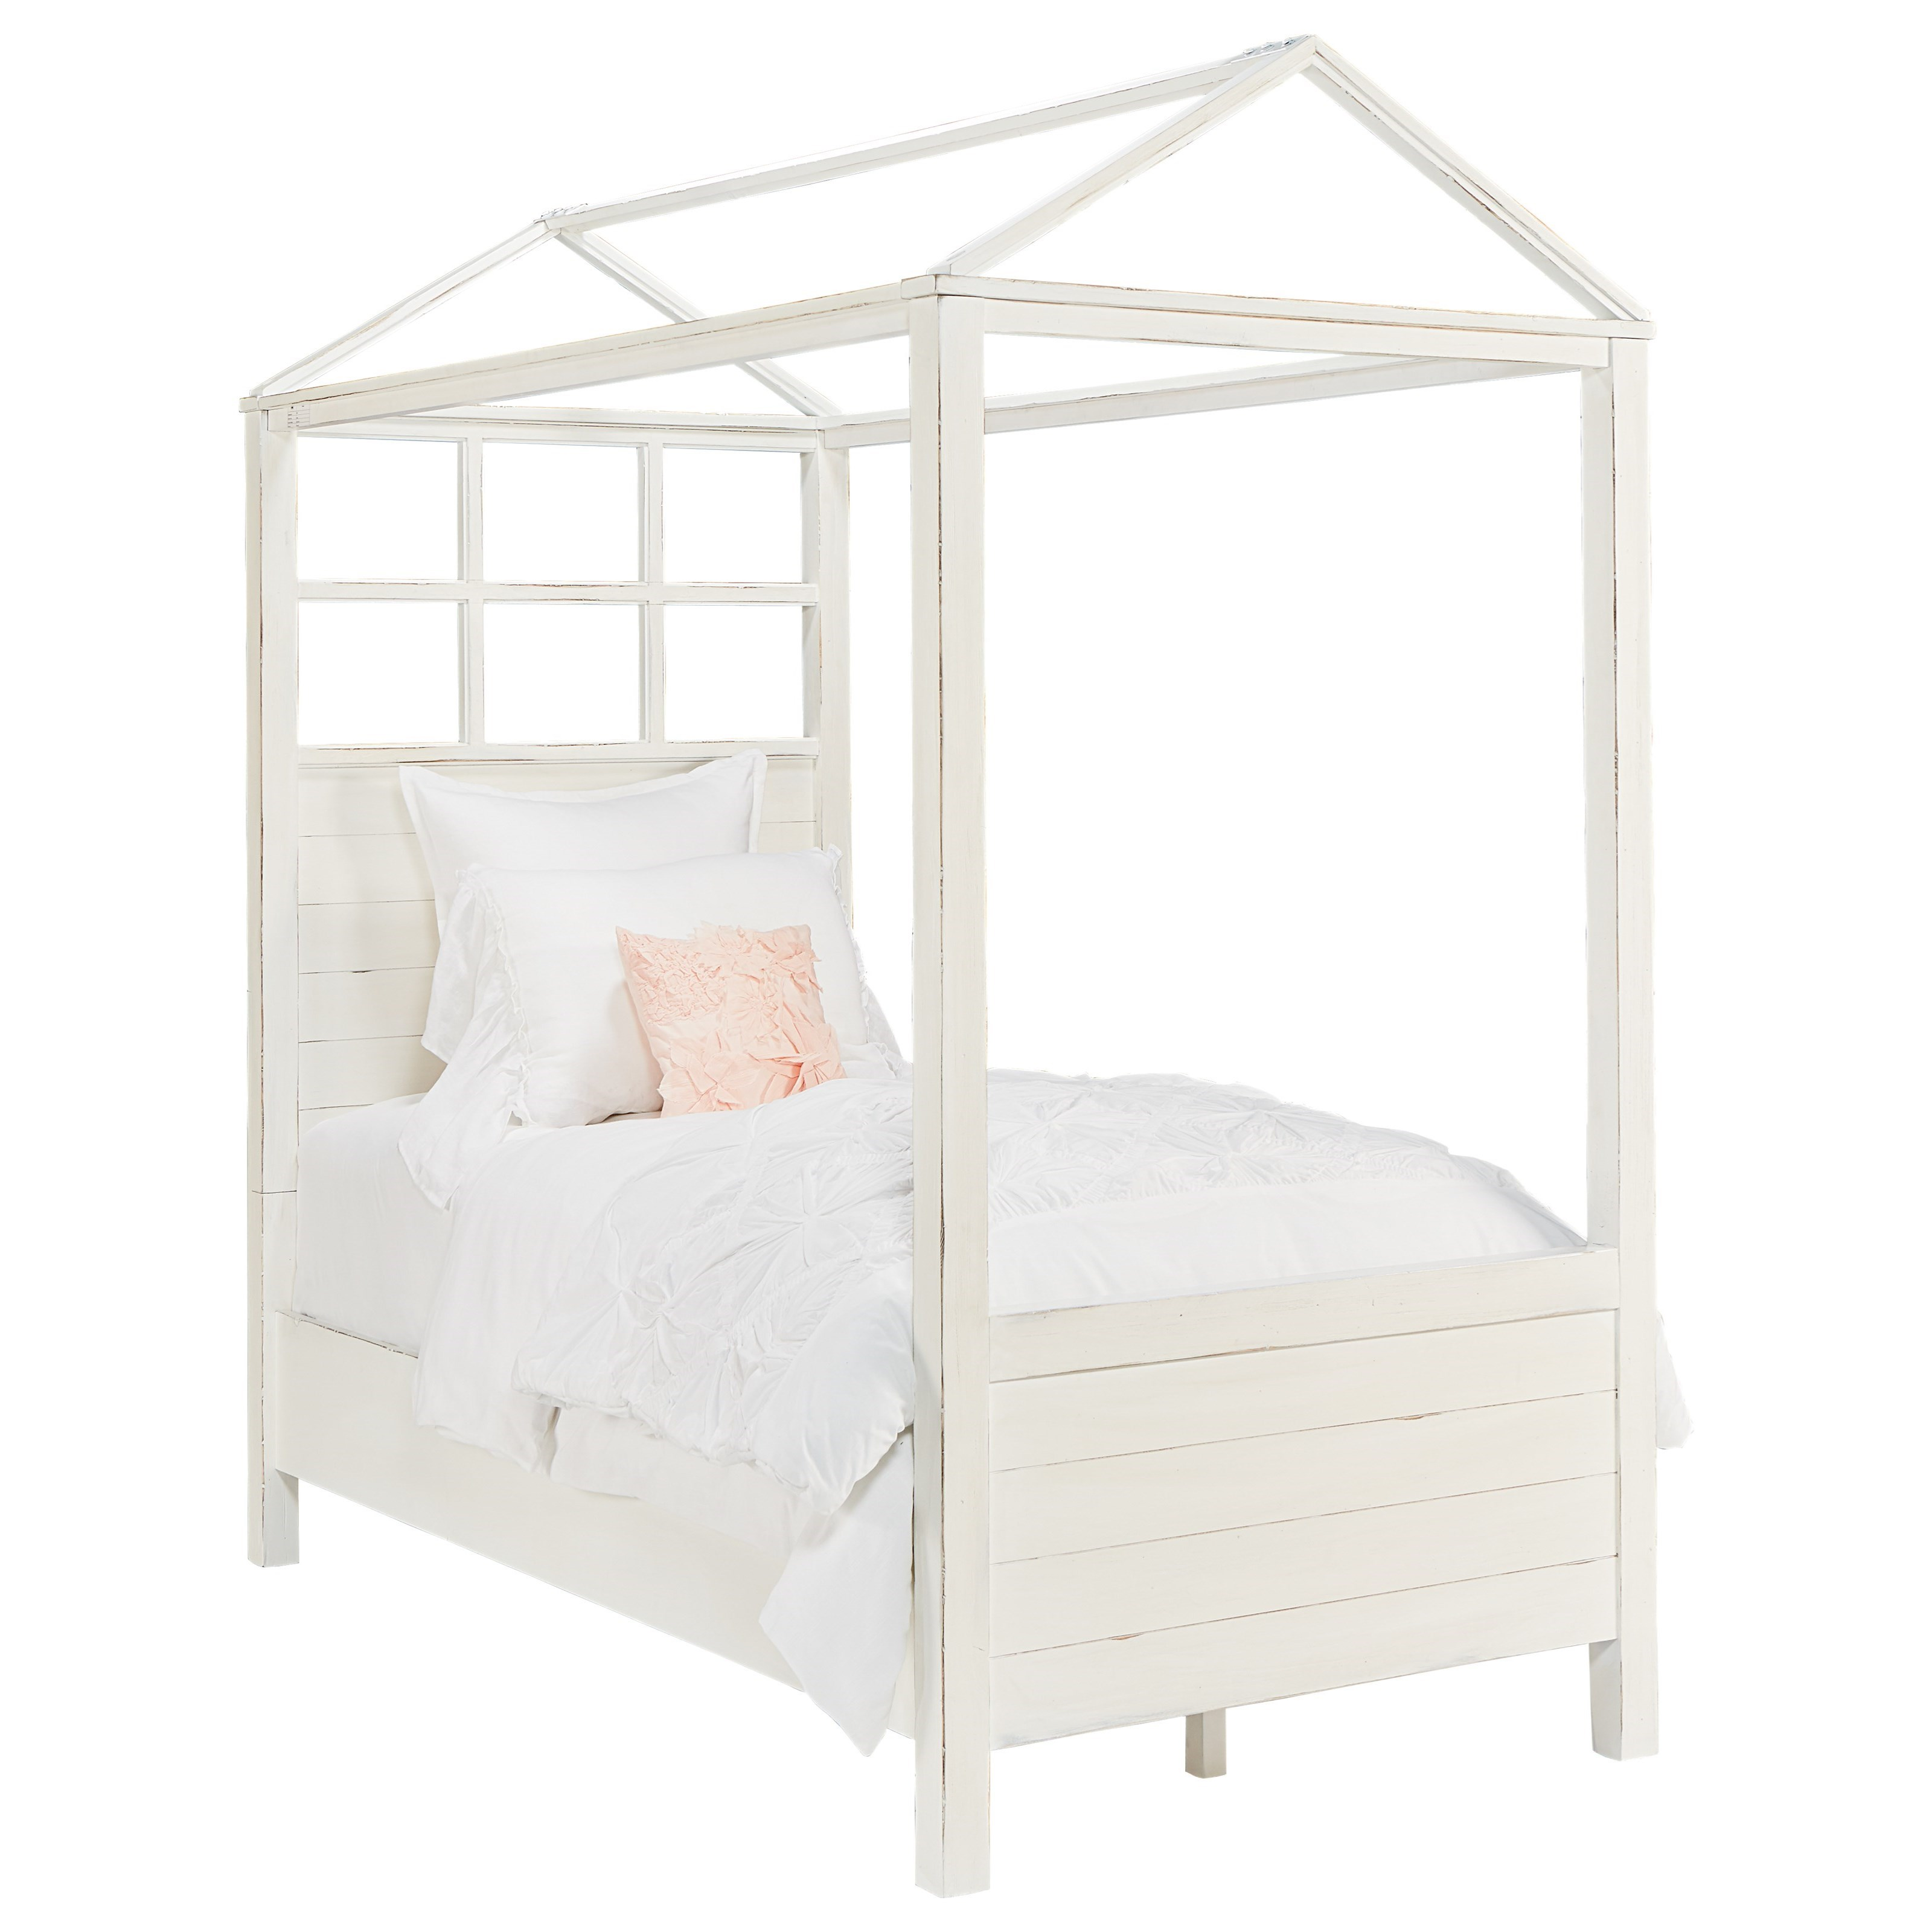 Playhouse Twin Canopy Bed By Magnolia Home By Joanna